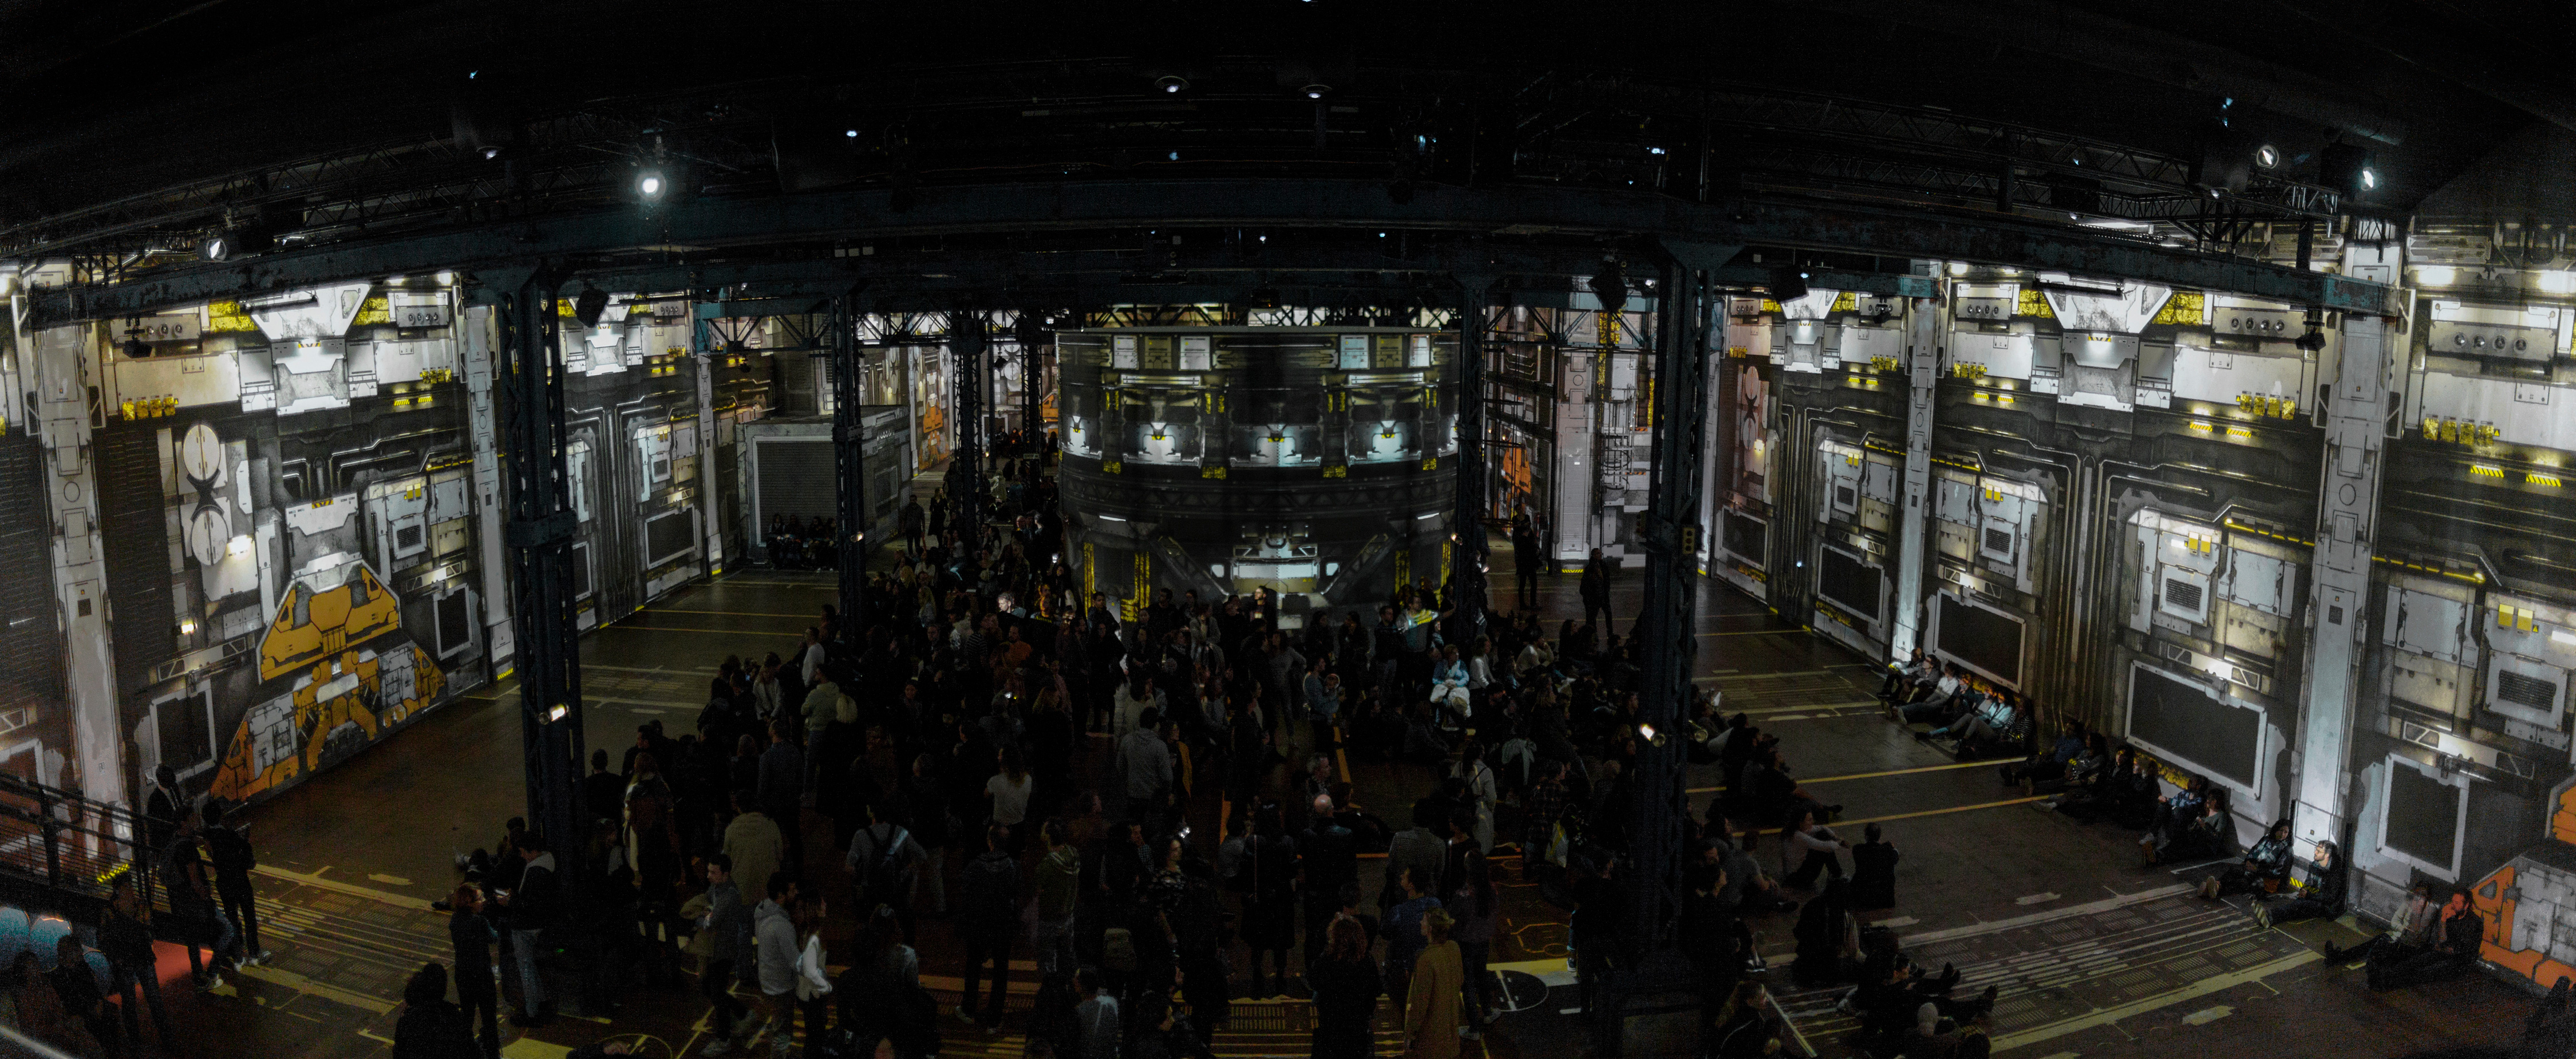 View of the whole room at Atelier Des Lumieres